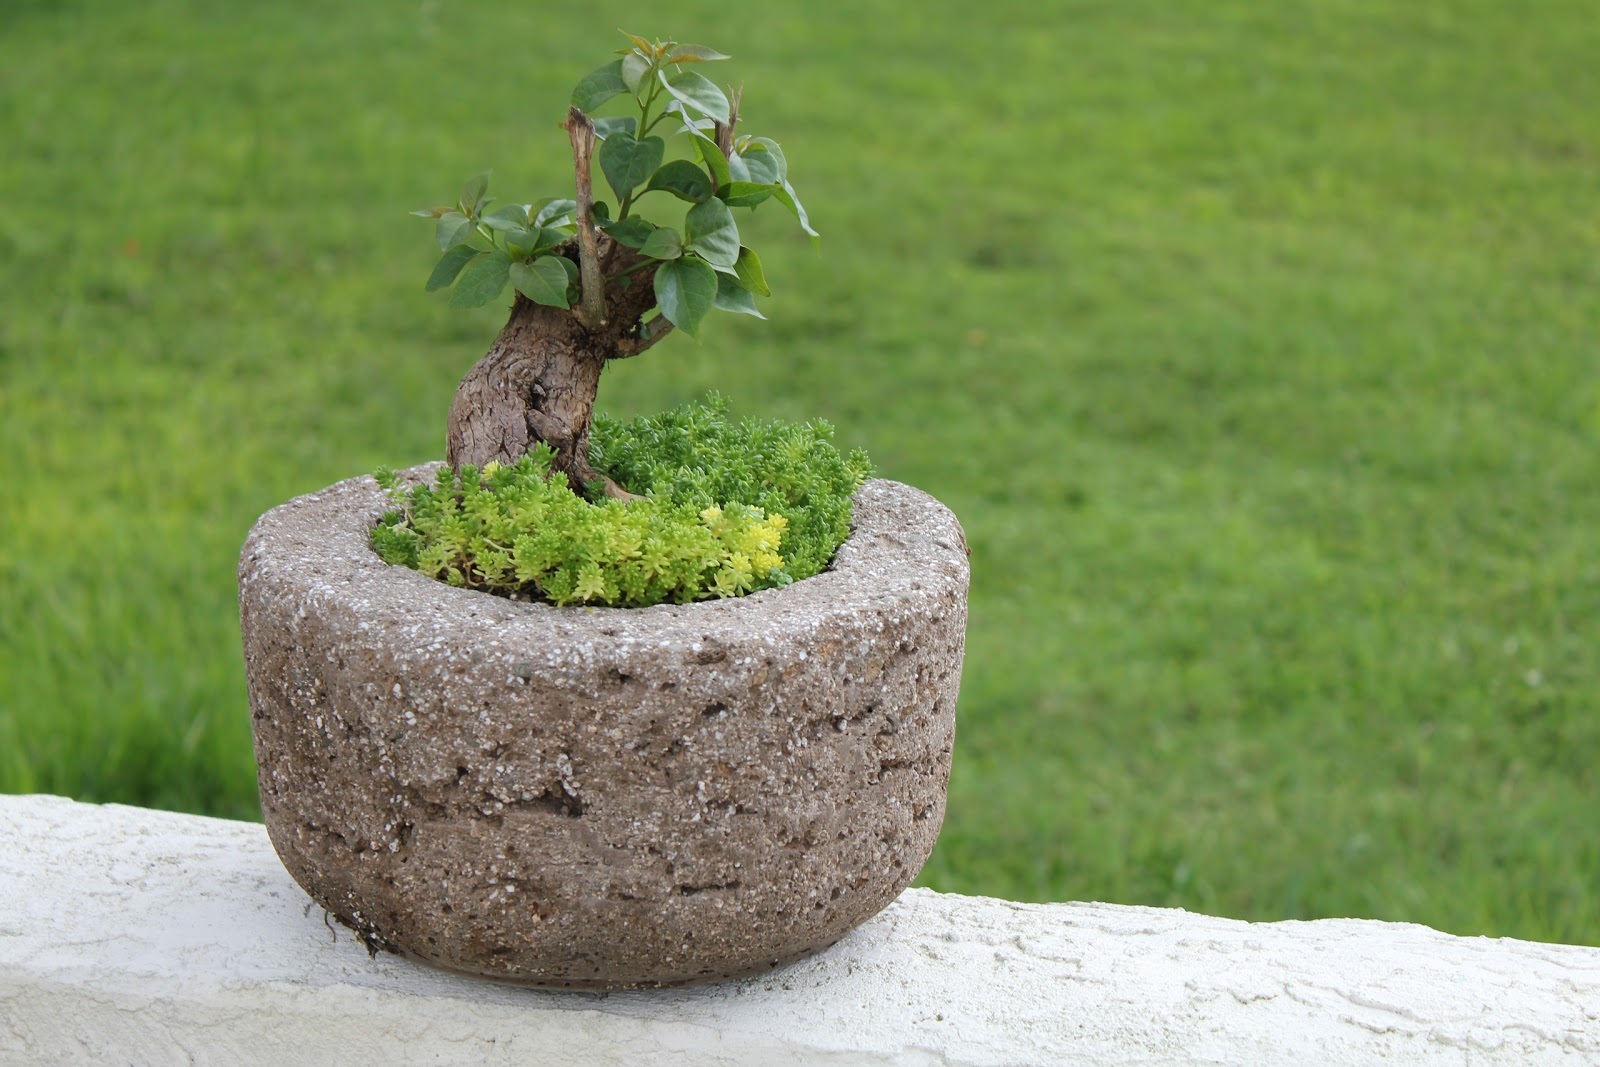 Bougainvilleas on hypertufa pots | The hypertufa succulent